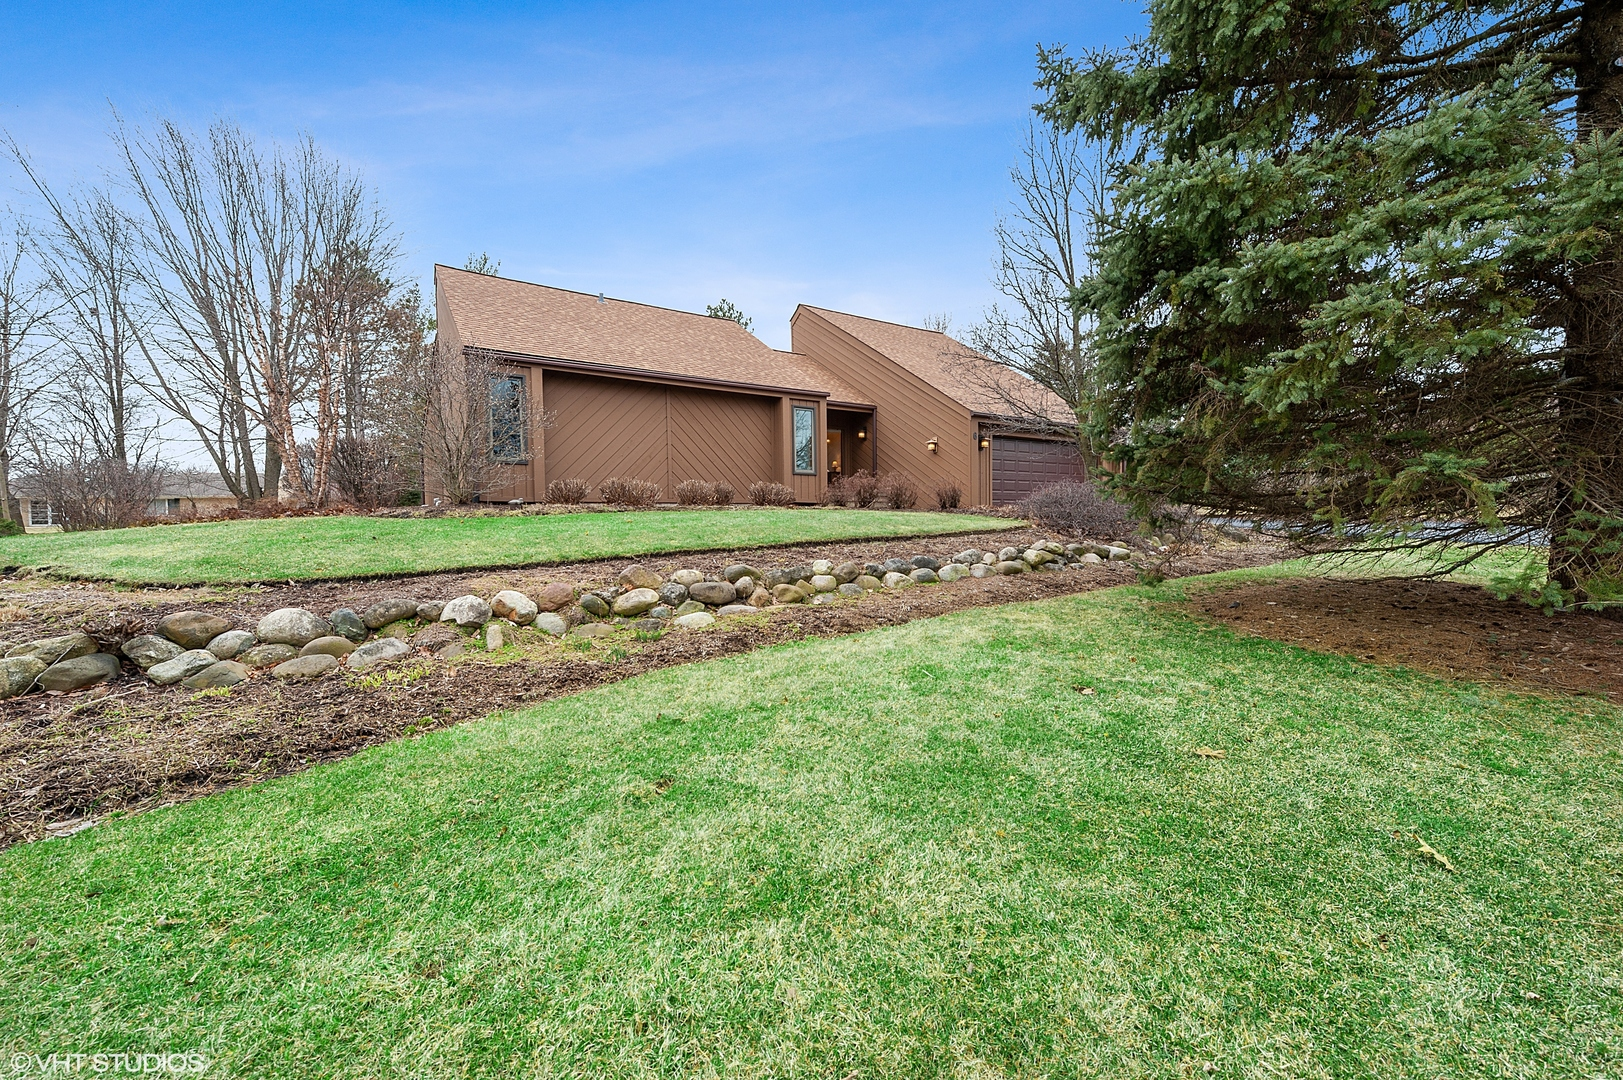 6 Chipping Campden Drive, South Barrington in Cook County, IL 60010 Home for Sale